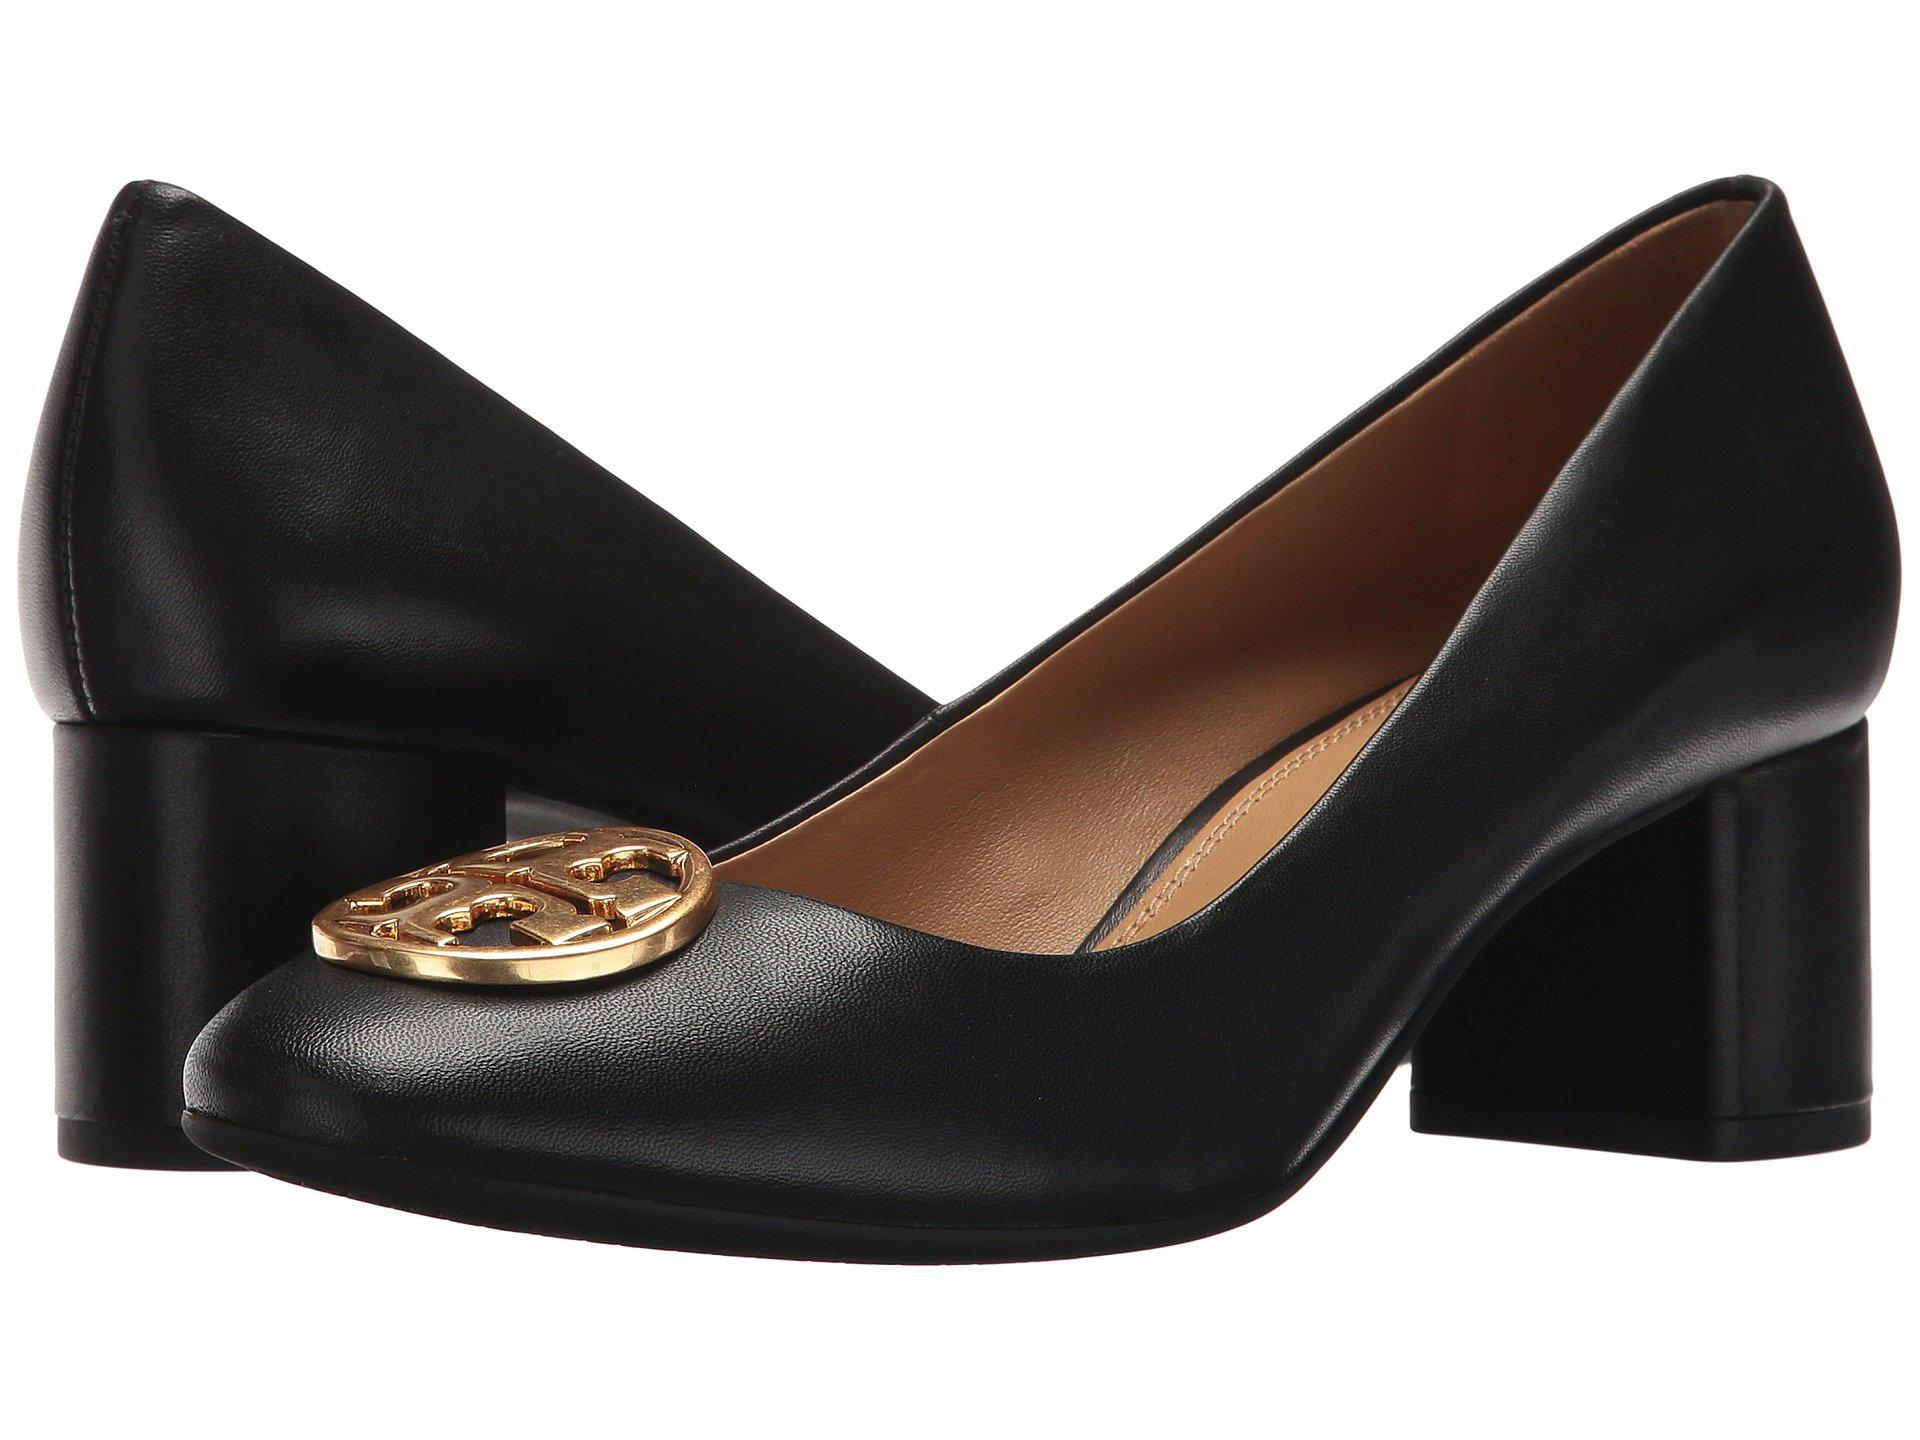 Discount Pay With Paypal Tory Burch Chelsea 50 Pumps Many Kinds Of Cheap Online Buy Cheap Online NtGwW